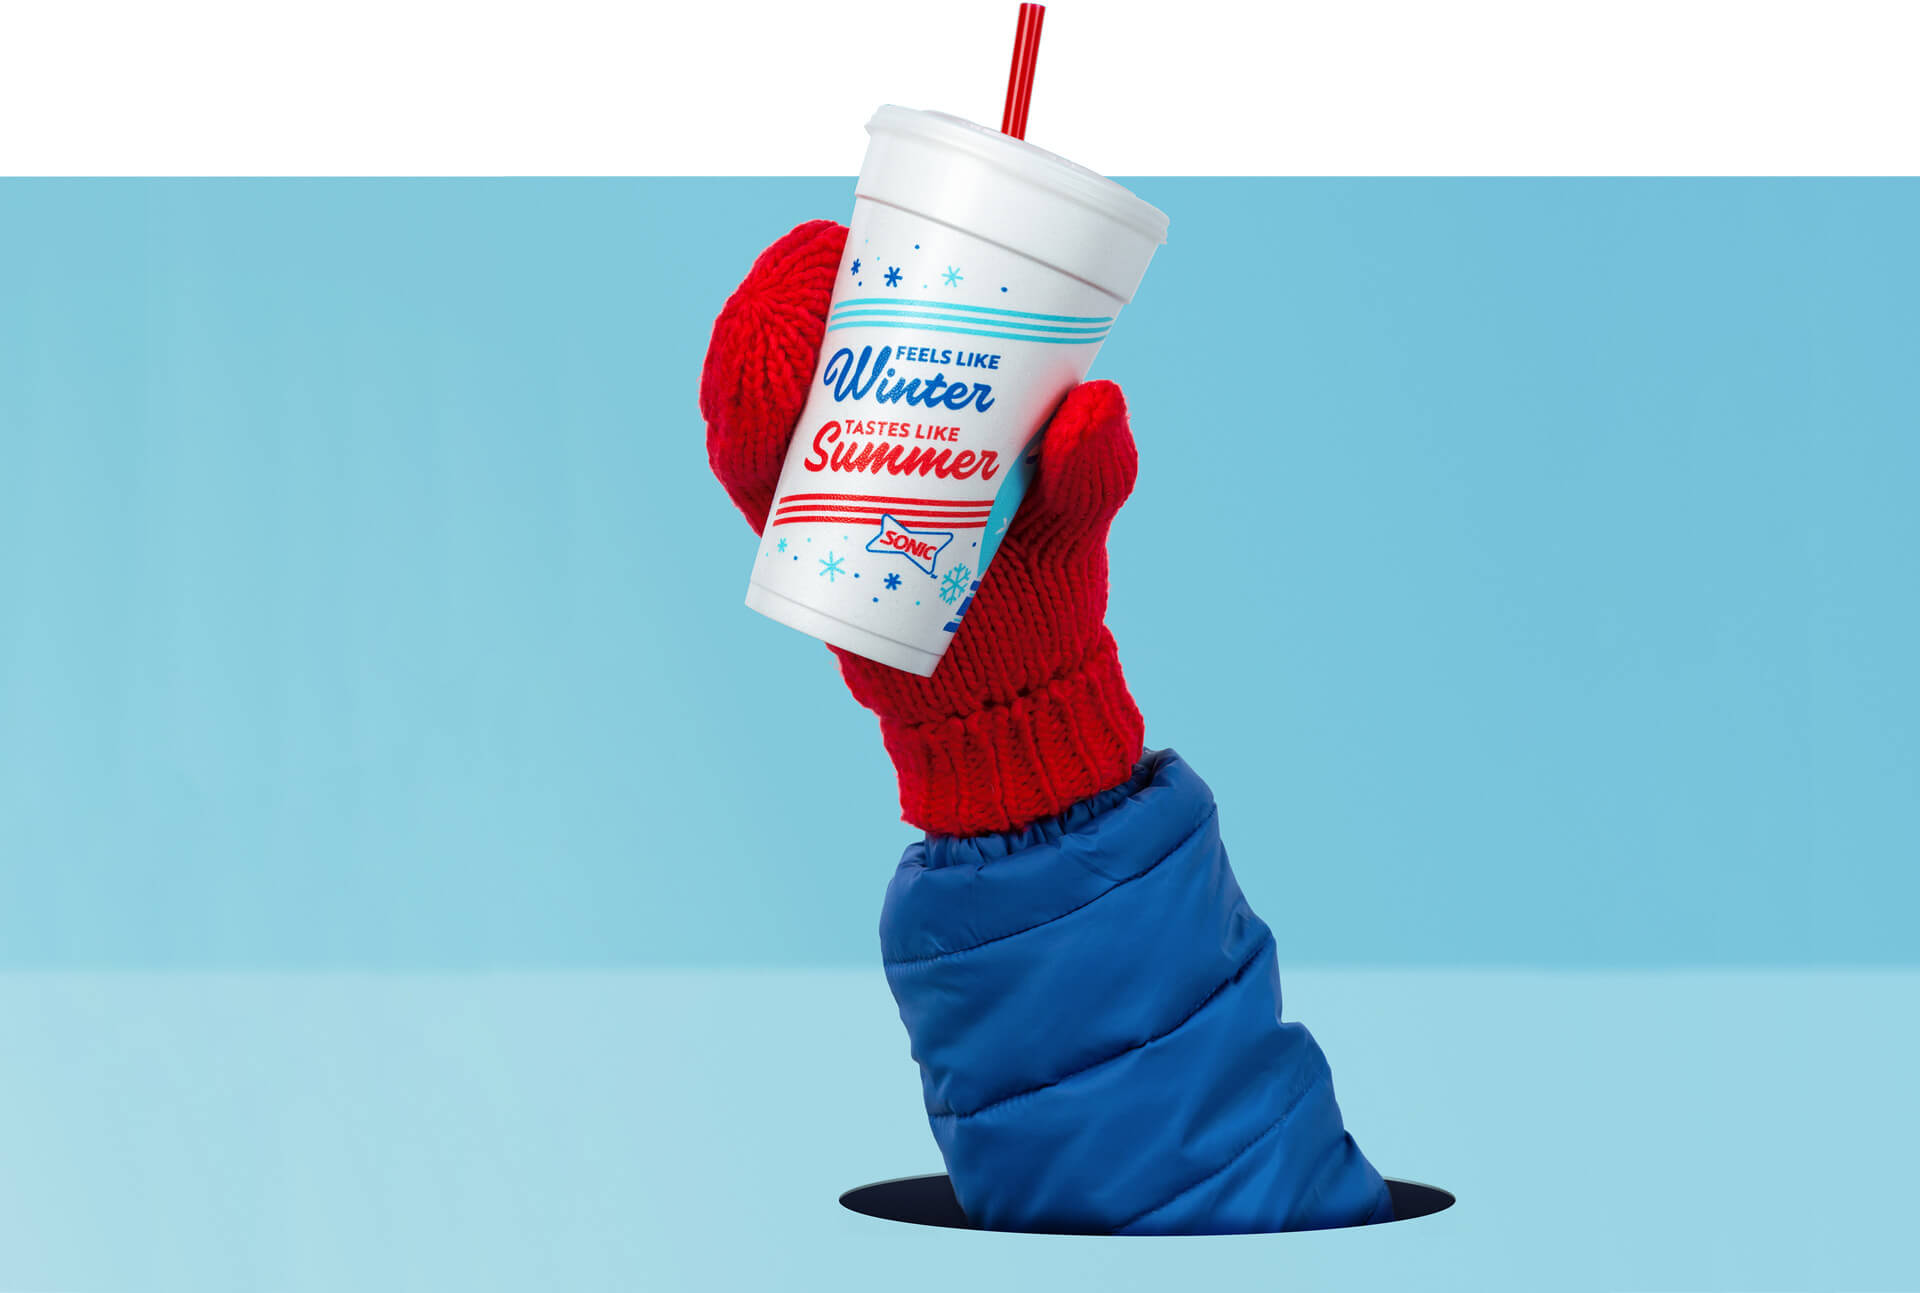 Red mittened-hand holding up a SONIC cup.